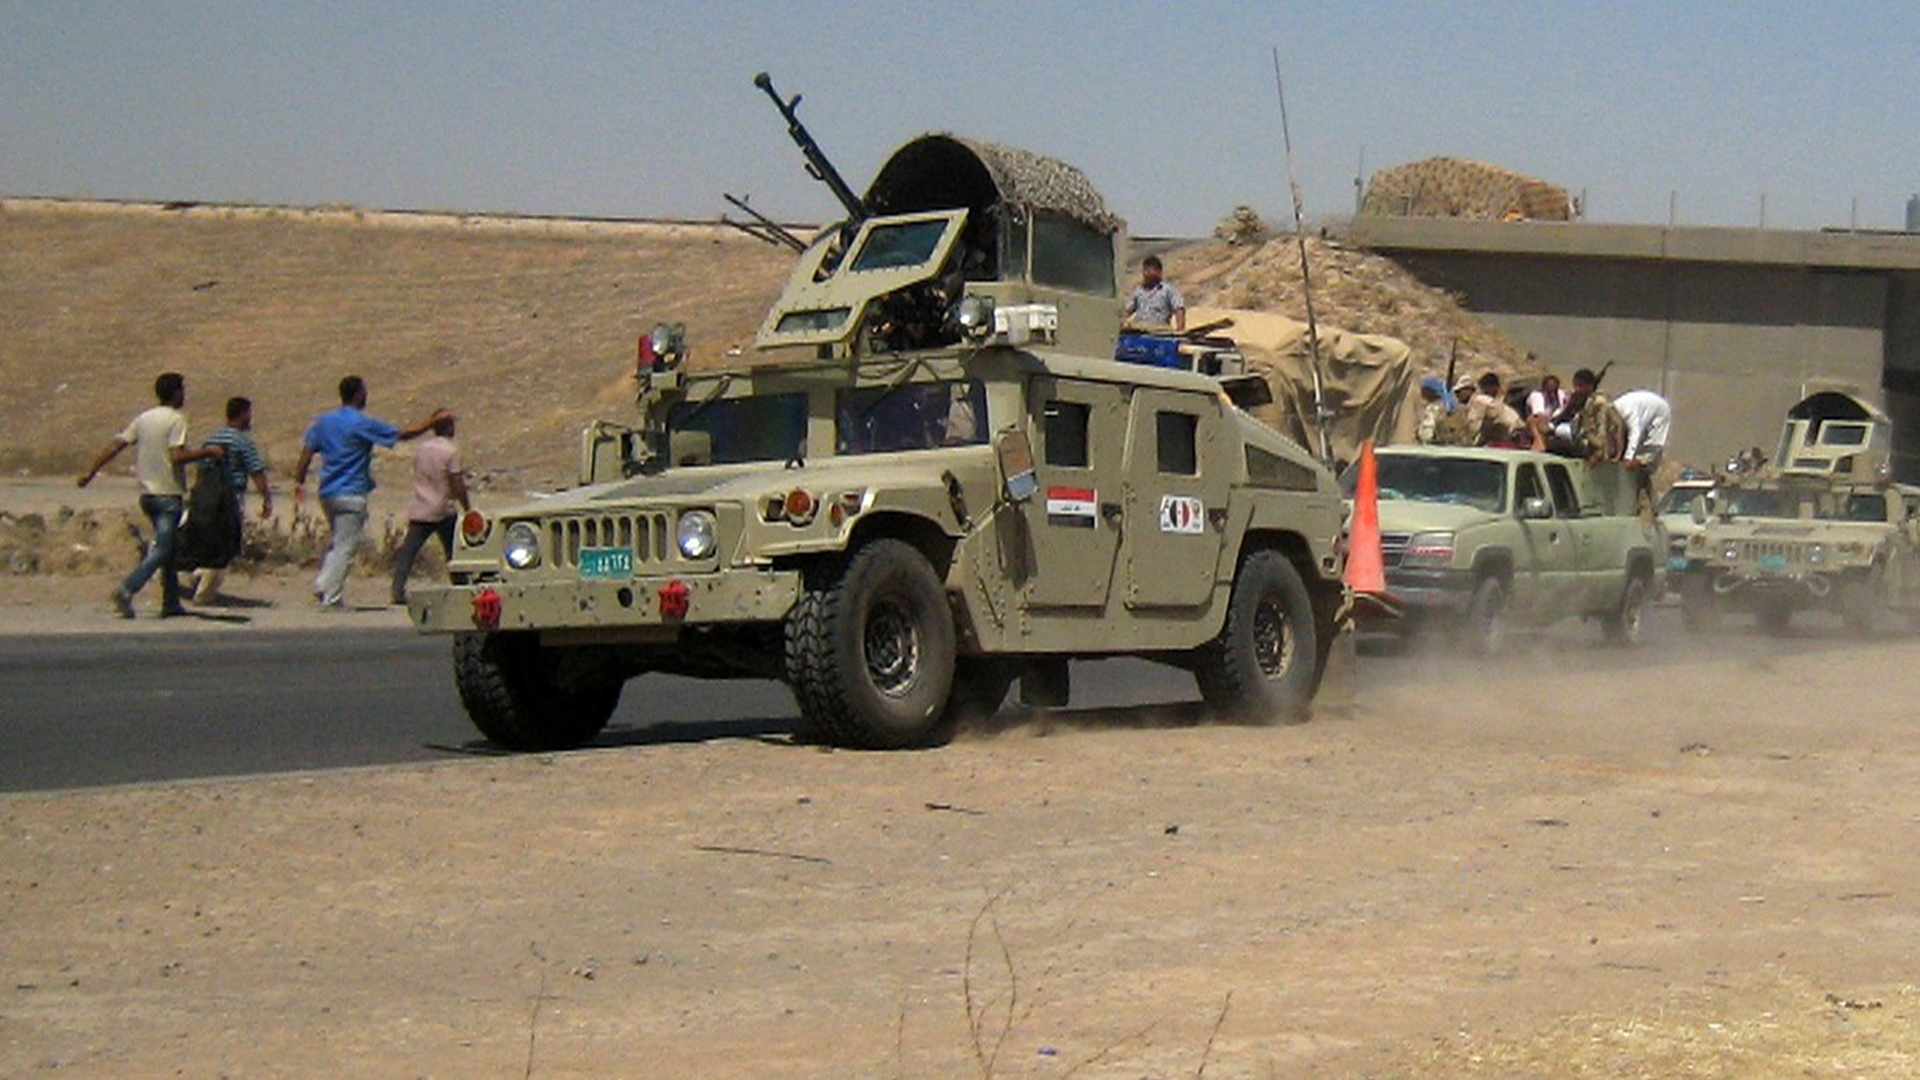 ISIS Militants Rampage Across Iraq: What You Need to Know